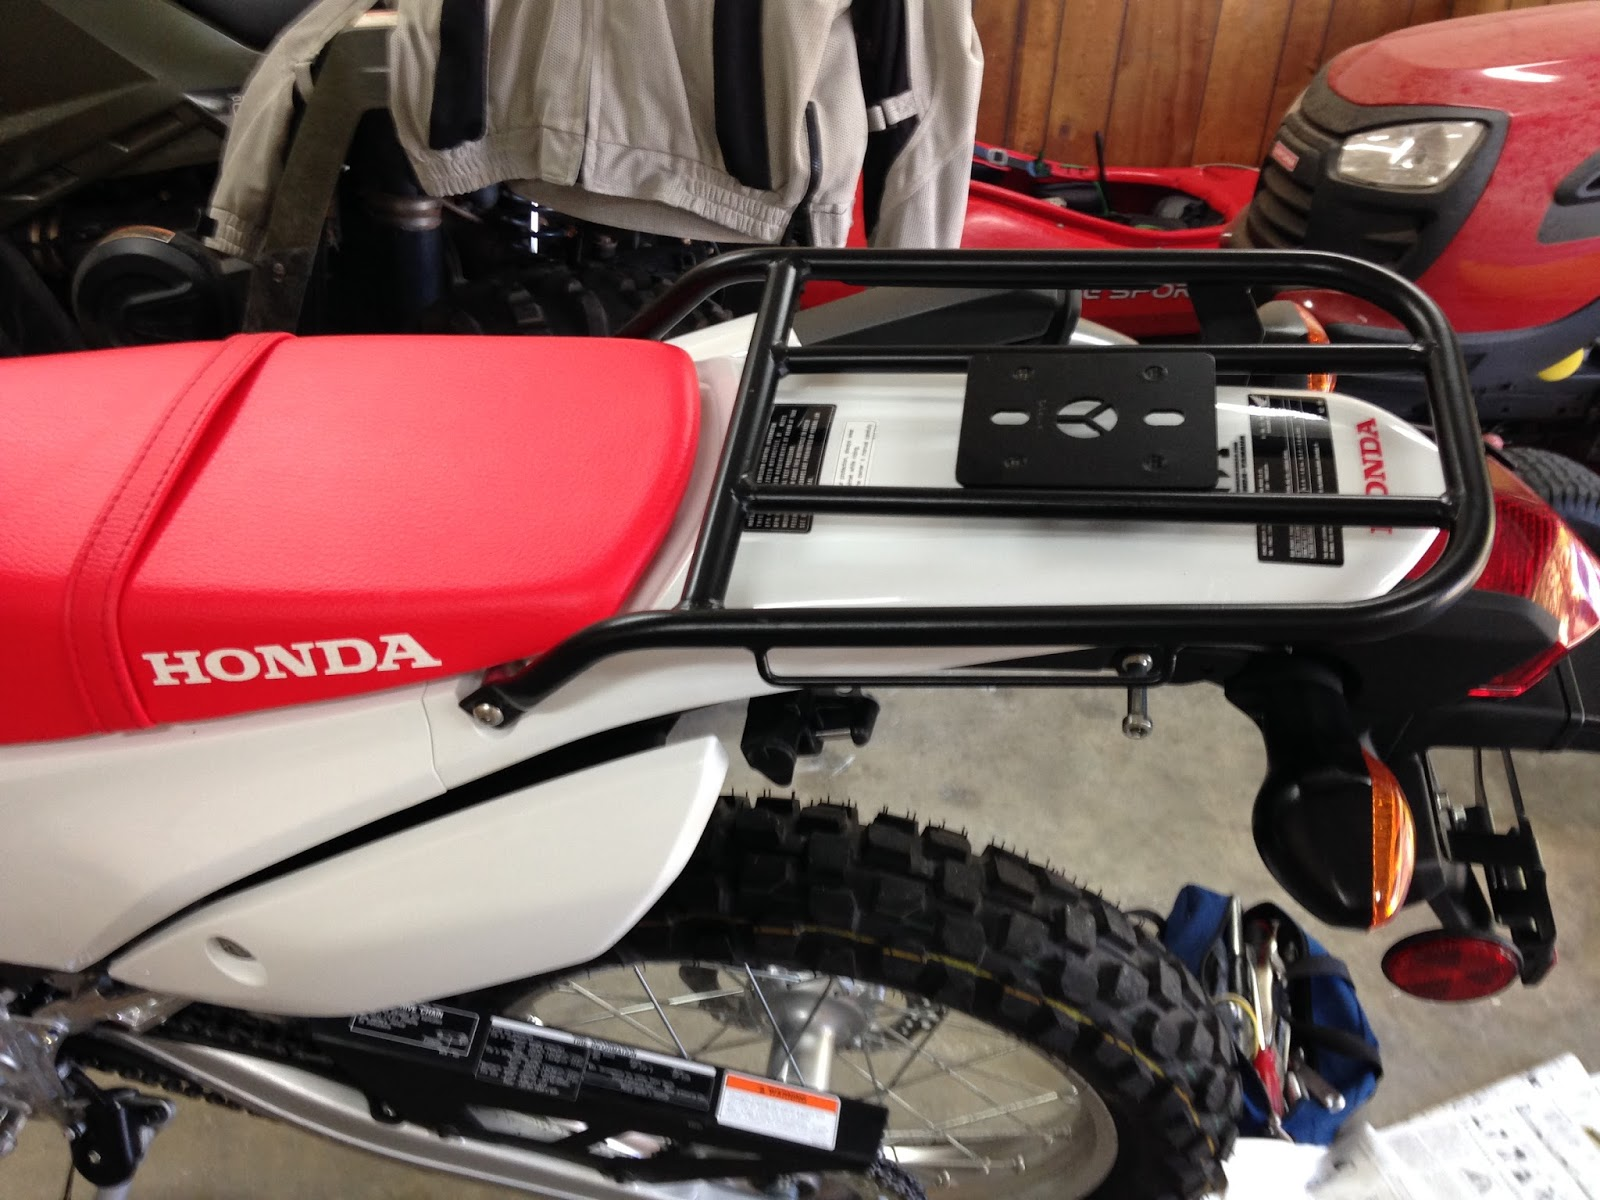 Trans-America Trail 2016: TAT-2016 Post 32 Honda CRF250L ...